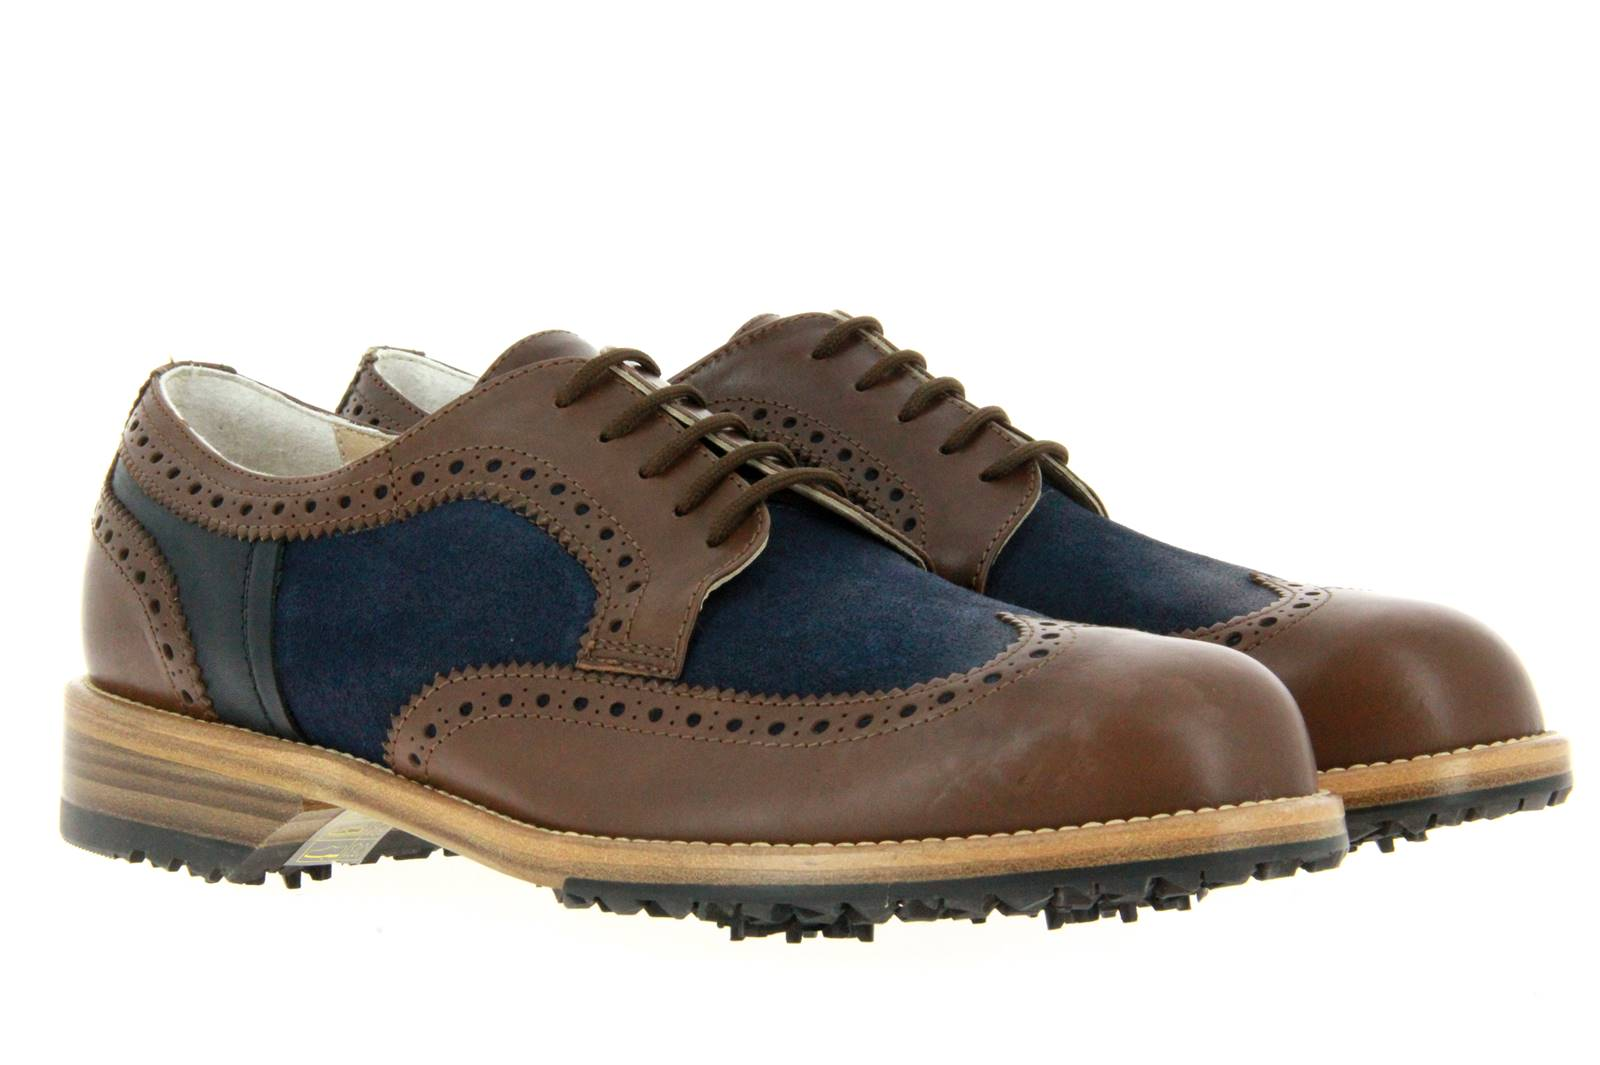 Tee Golf Shoes men's - golf shoe JASON MORO BLU